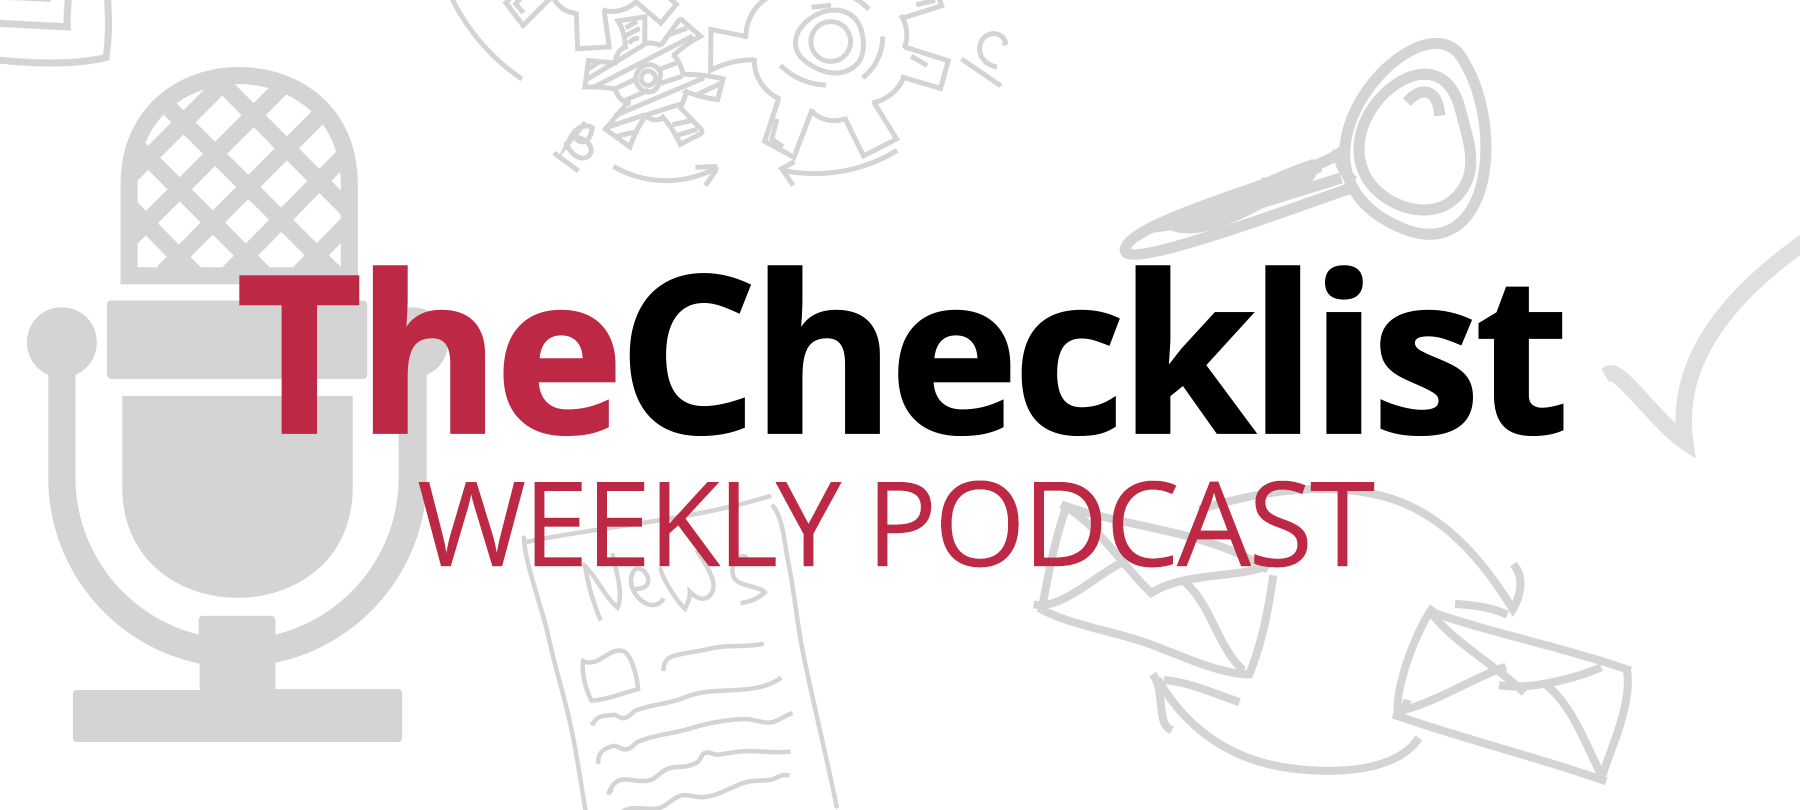 Episode: Best of the Checklist